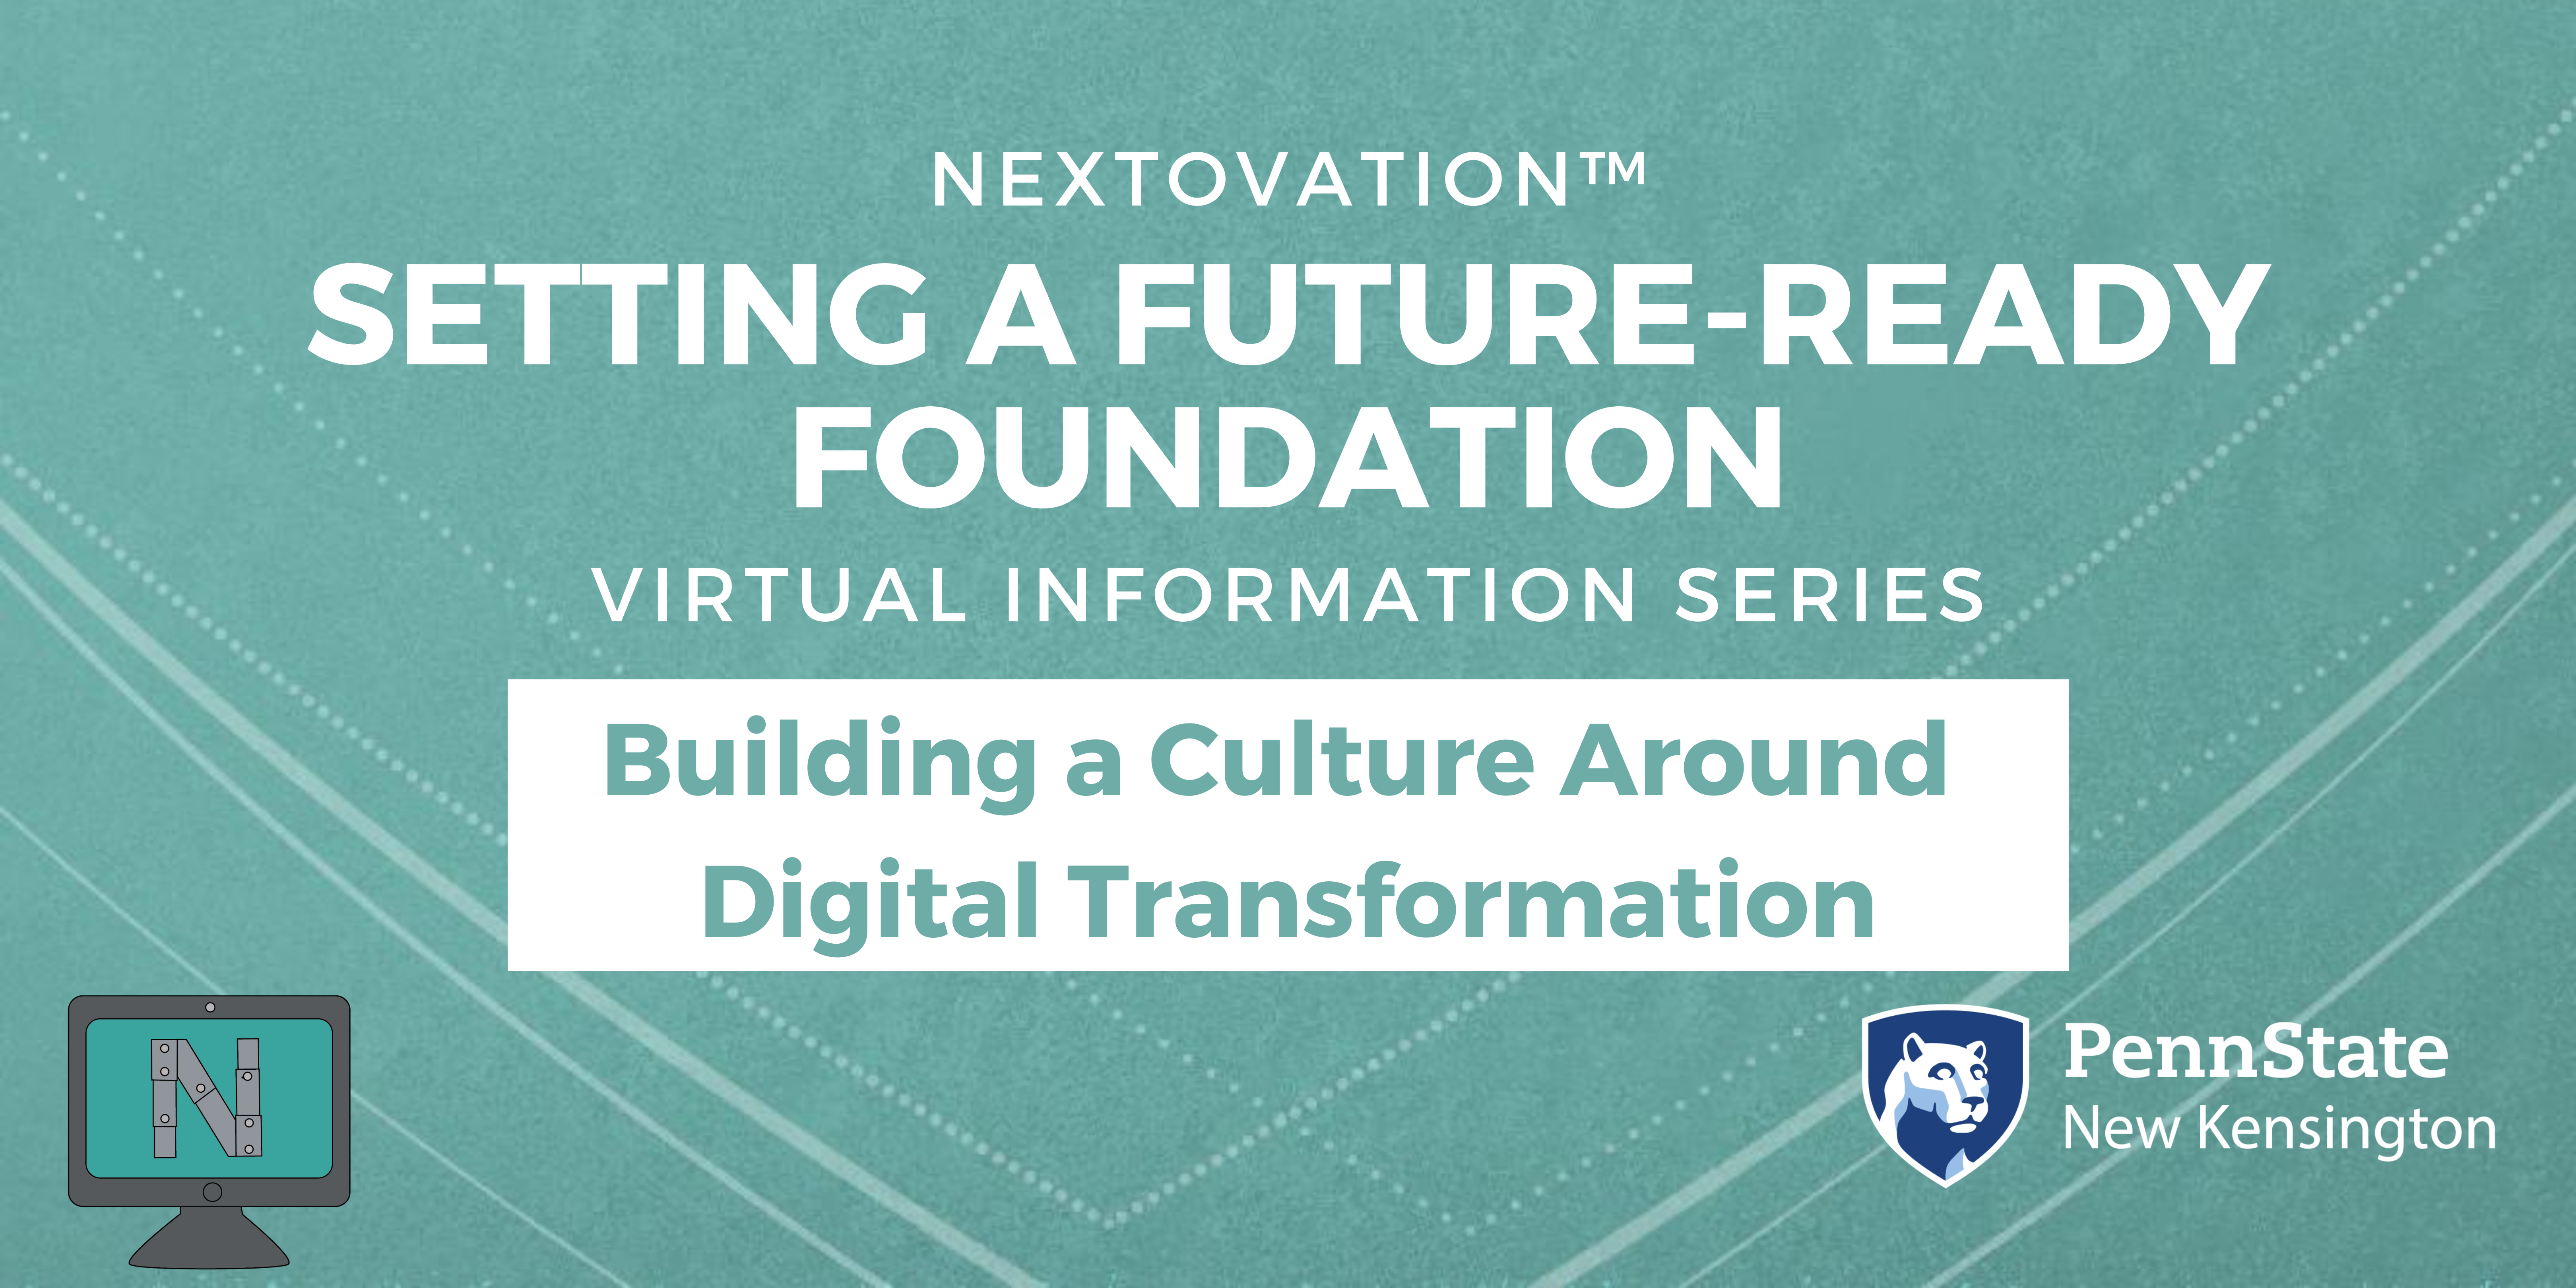 Webinar Title: Building a Culture around Digital Transformation